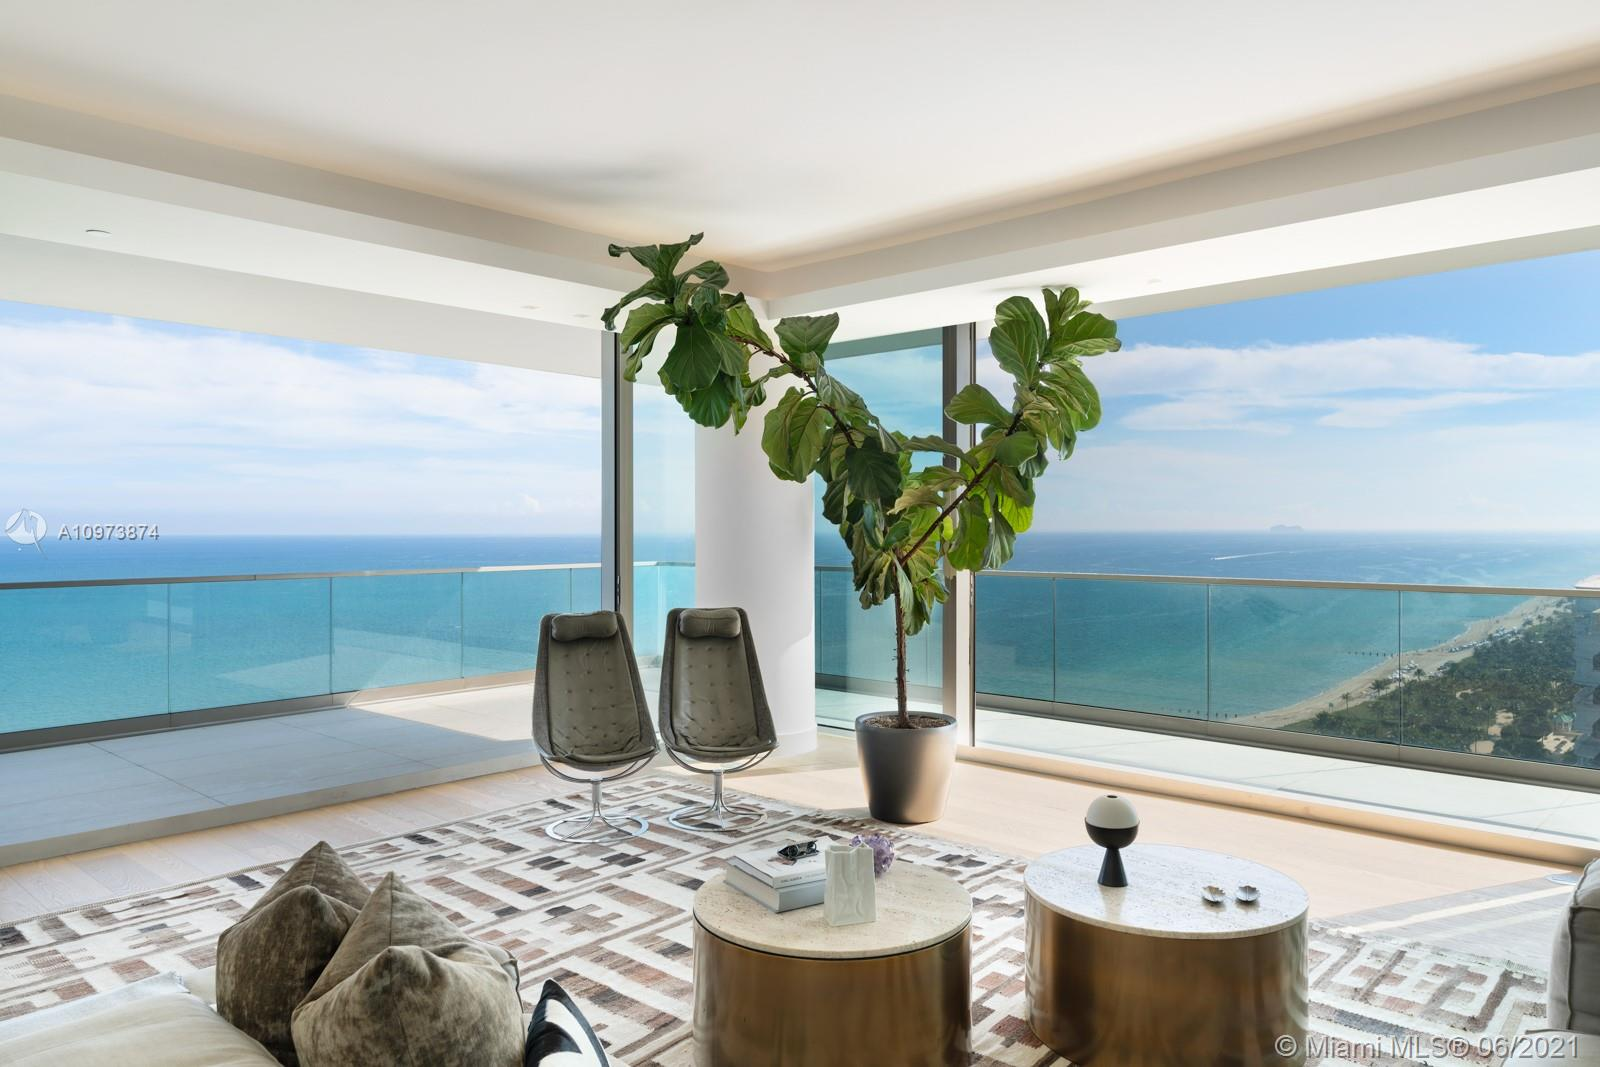 Step Inside With Me! An exquisite residence in the sky, 2001S is Oceana Bal Harbour's Flagship Floorplan. Finished w/ the highest caliber of materials, this flow-through corner residence offers a 1,500SF wraparound terrace w/ 180 degree view of the Ocean to the East and the Downtown Skyline to the West. 4,185 SF of living space, 3 bedrooms, Den, Family Room, & 4.5 baths. Boasting a brand new gourmet kitchen, custom bar, enormous Master with dual walk-in closets & an ultra modern bath, as well as stunning millwork throughout, this home is the epitome of elegant luxury. Oceana is the top tower in Bal Harbour offering 400' of beachfront, 24-hour concierge services, poolside restaurant, tennis, spa, fitness center, resort style pool w/ cabanas & more. The South 01 line is its most desired plan